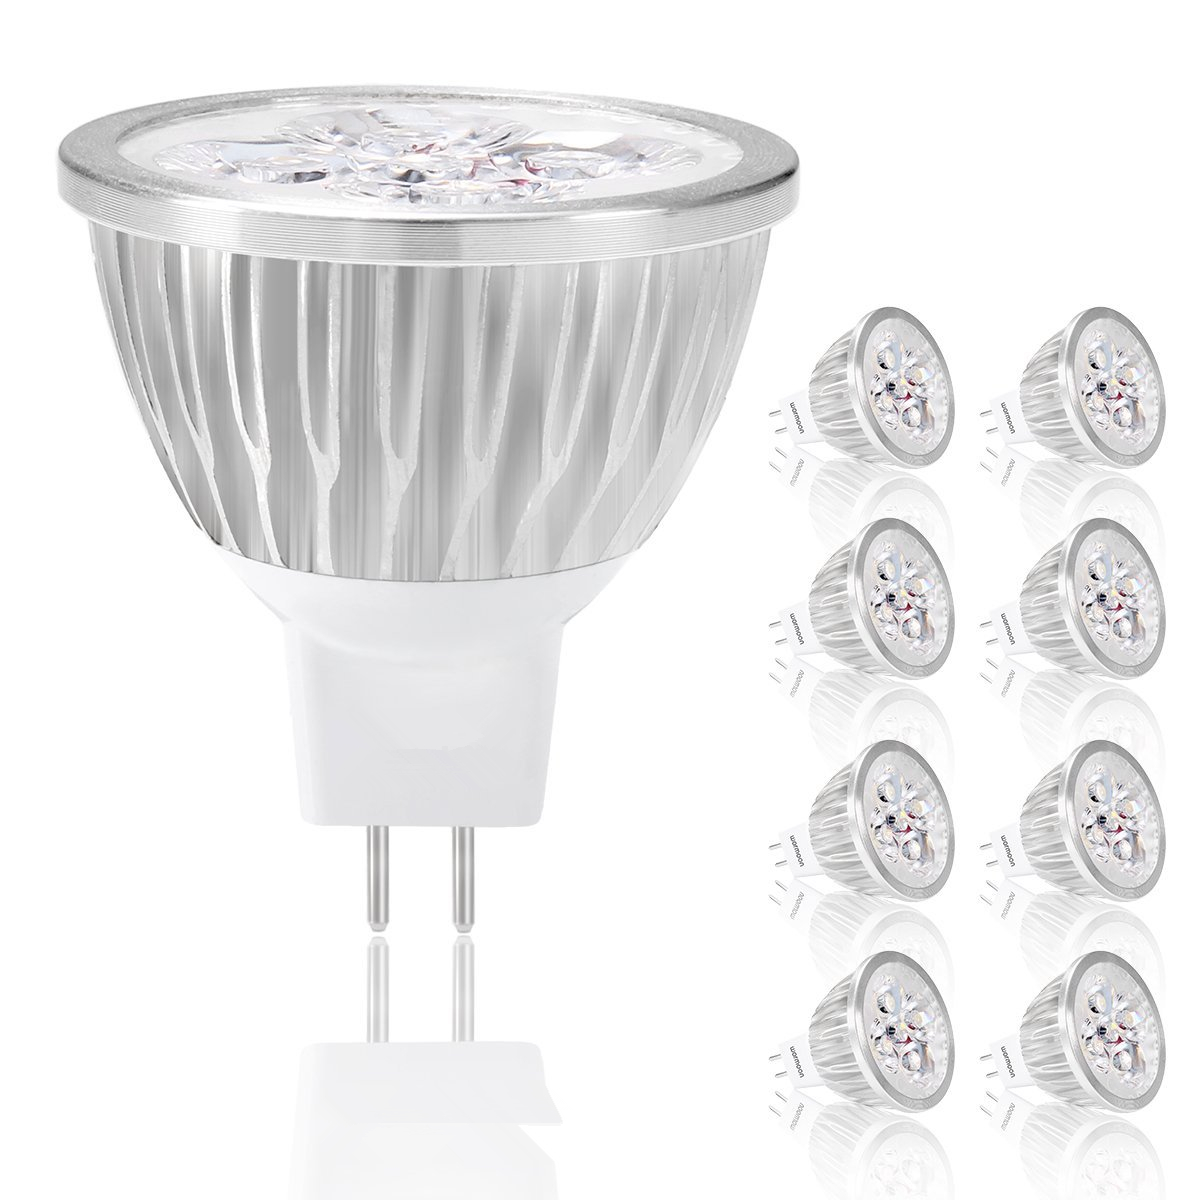 Wholesale LED BULB mr16 Super Brightness 5W 4W 3W 12V MR16 LED Spotlight Warm Cool White New Style LED Light LED Bulb